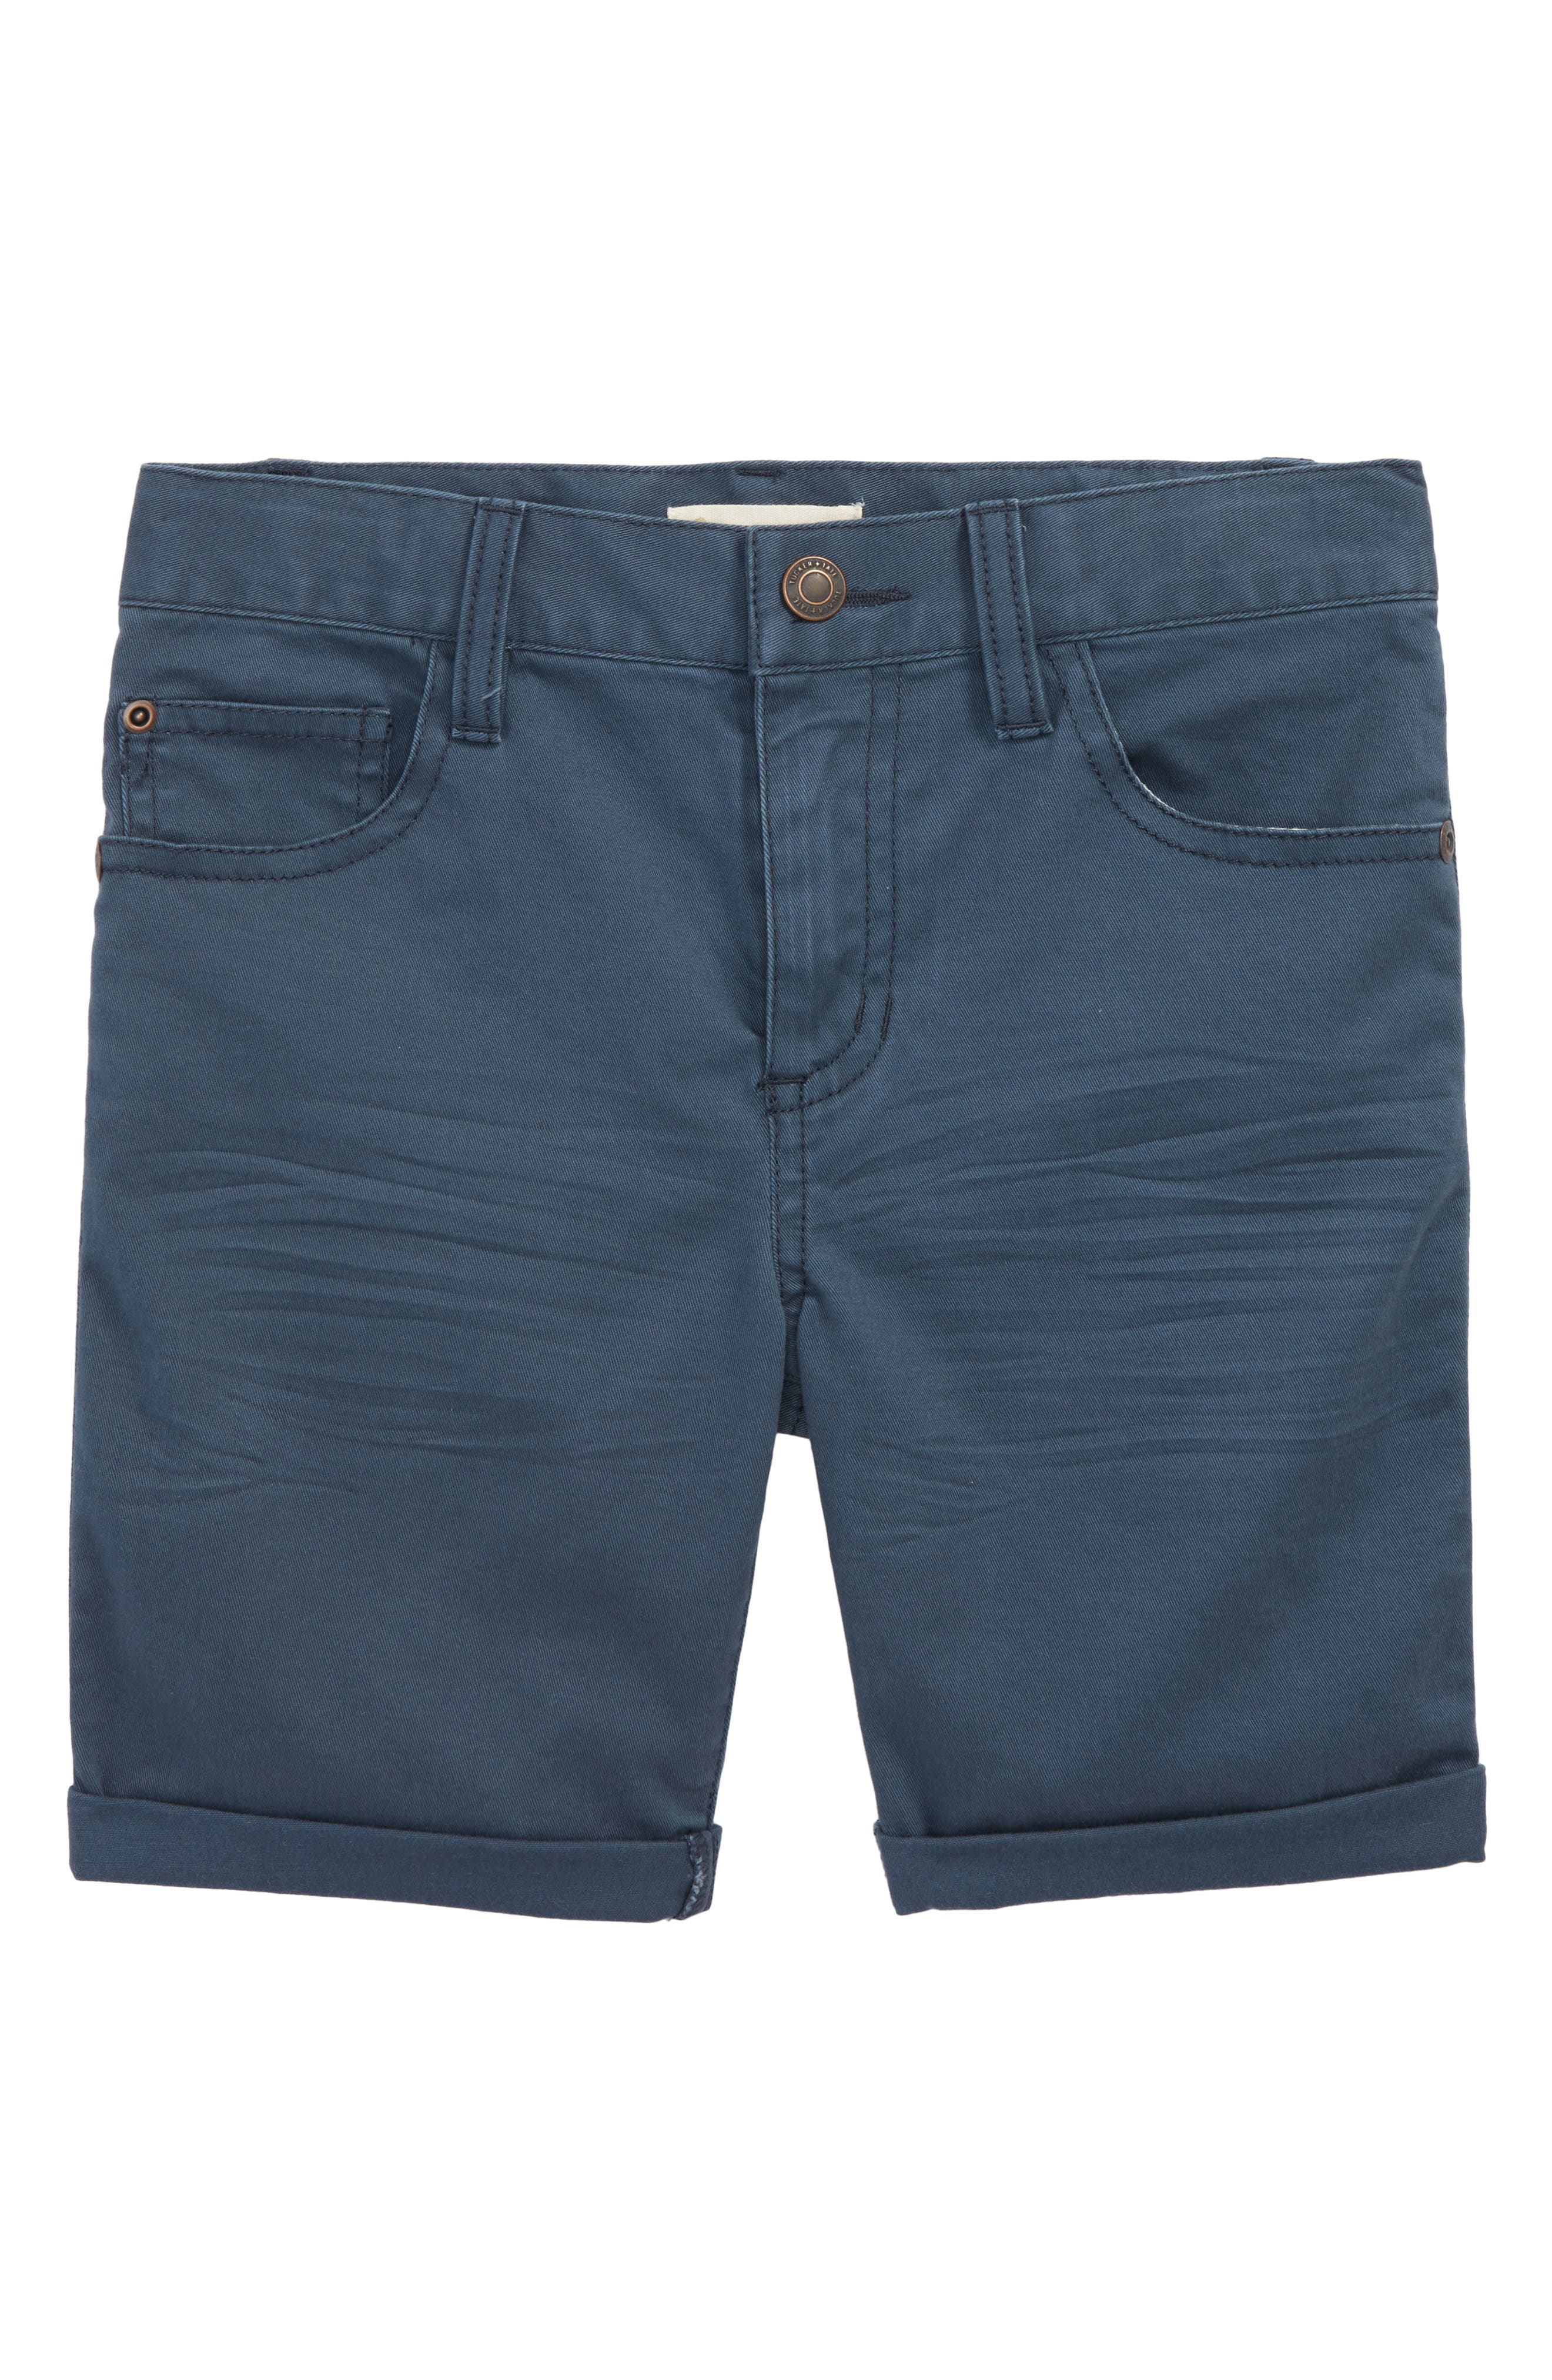 Stretch Twill Shorts,                         Main,                         color, Navy Midnight